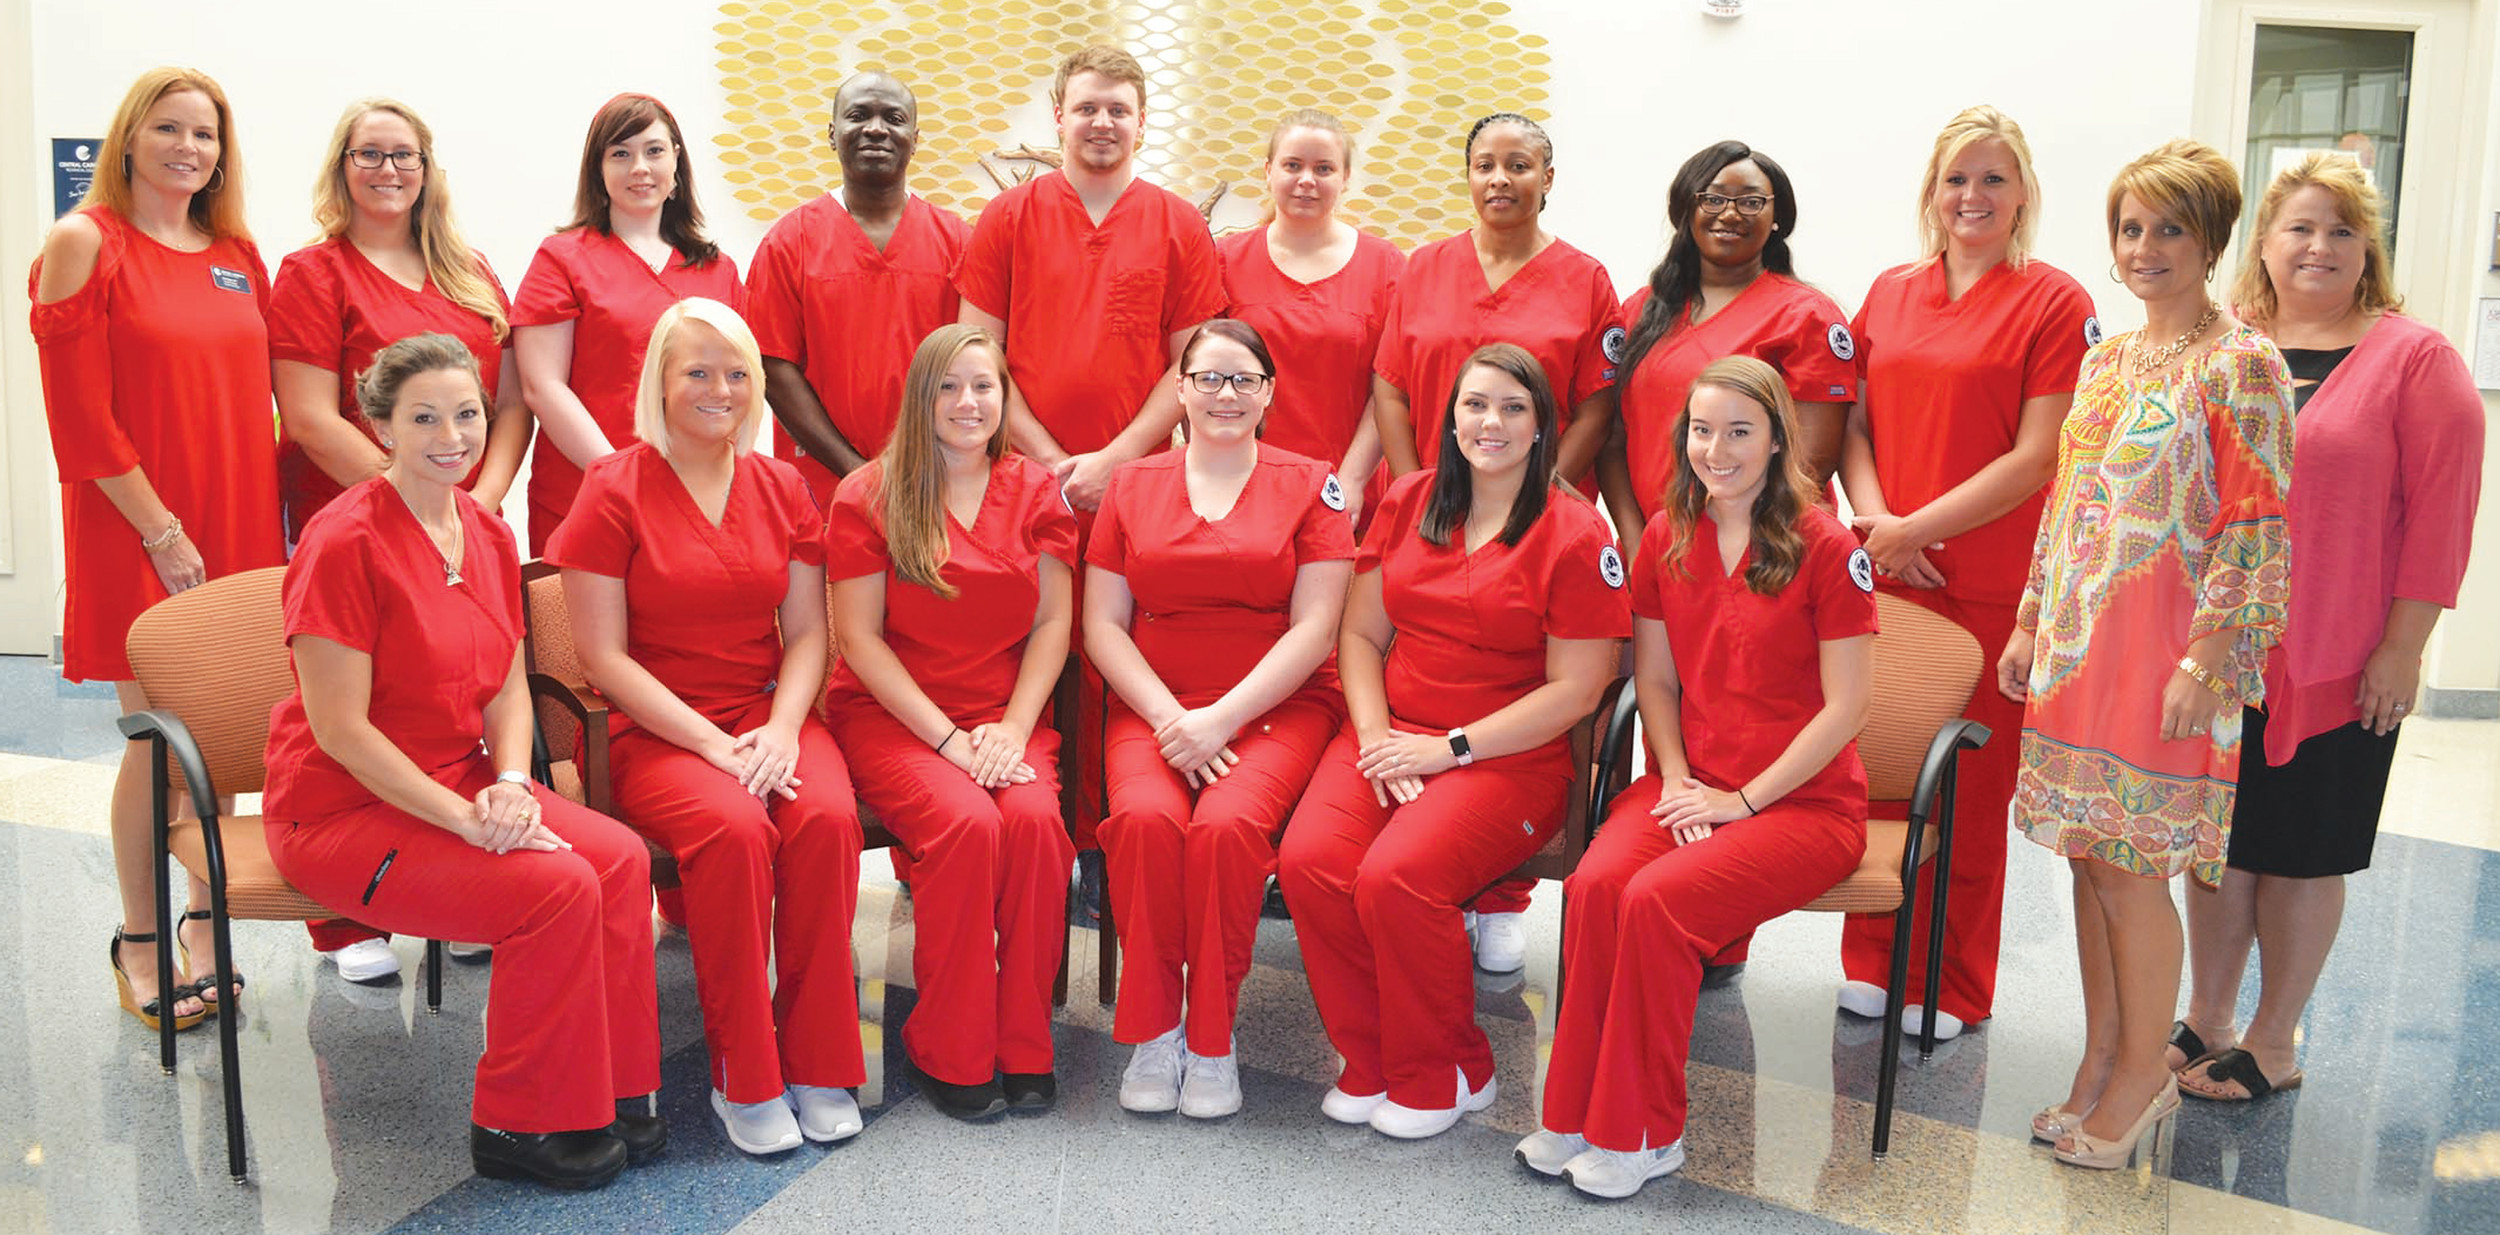 Central Carolina Technical College pinned 16 surgical technologists at a ceremony held on Aug. 1 at the Health Sciences Center.